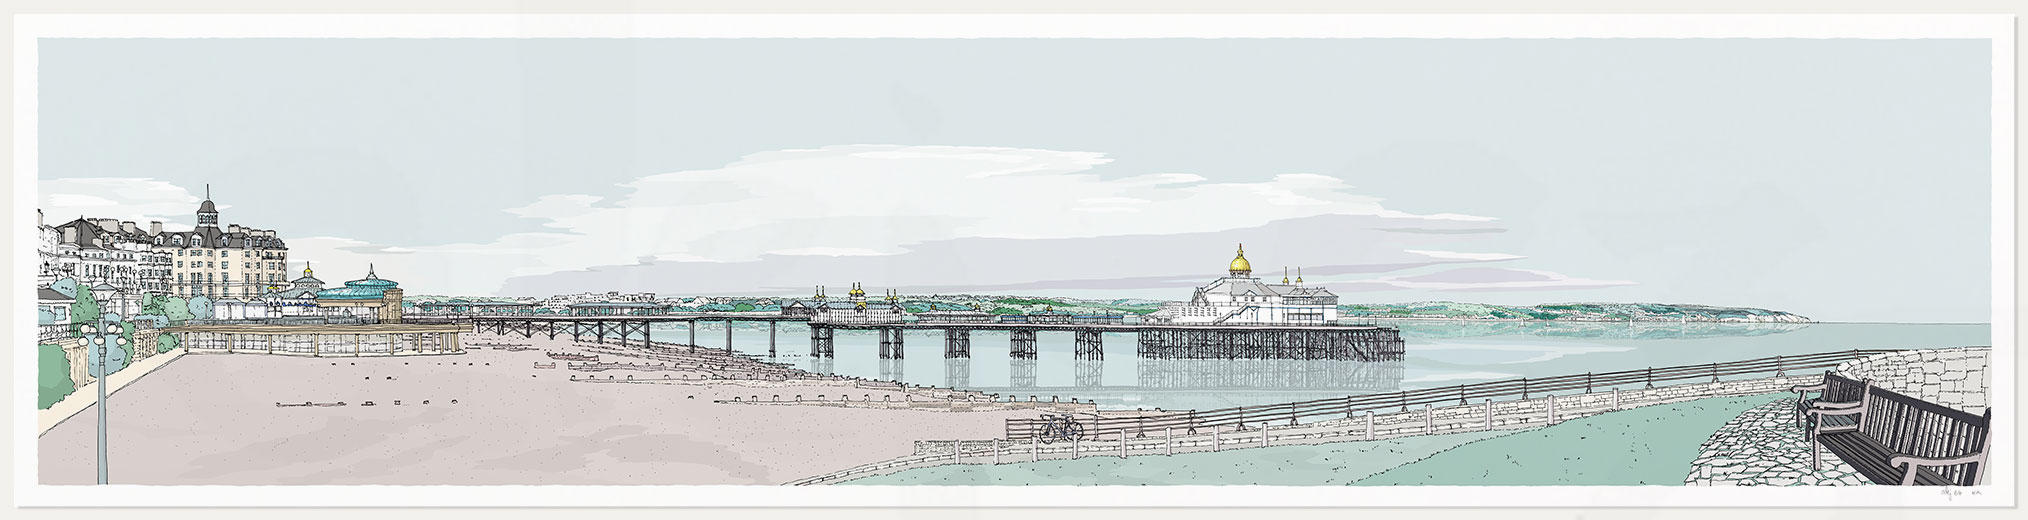 Print named Eastbourne East Promenade Pebble Beach by artist alej ez